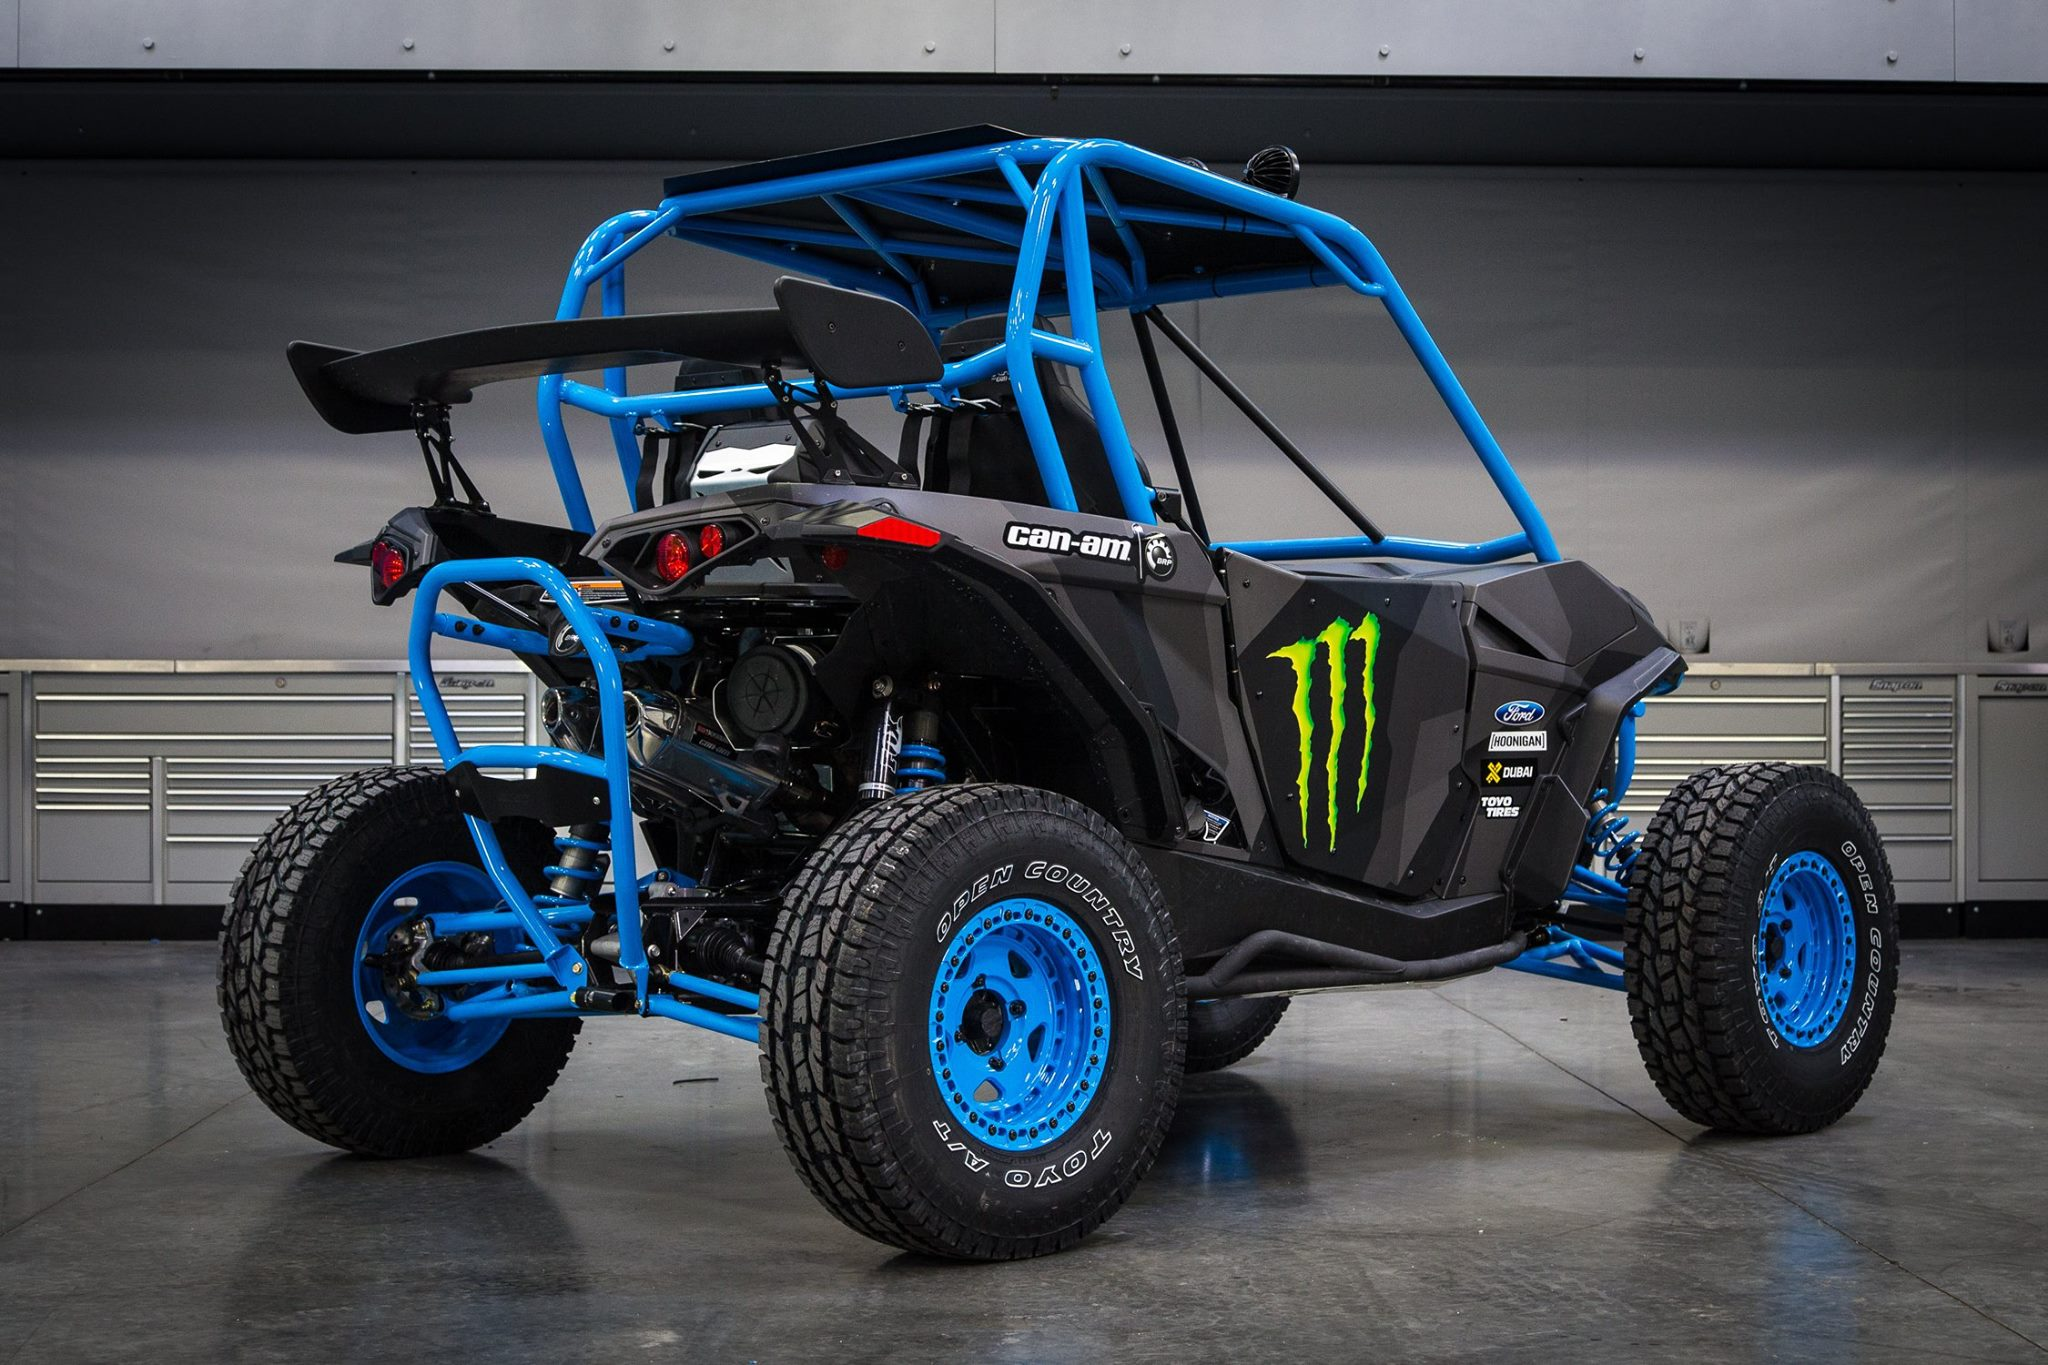 2017 Can Am Maverick 4 Seater >> CAN-AM BRAND AMBASSADOR KEN BLOCK SHOWCASES CUSTOM MAVERICK SIDE-BY-SIDE VEHICLE BUILDS